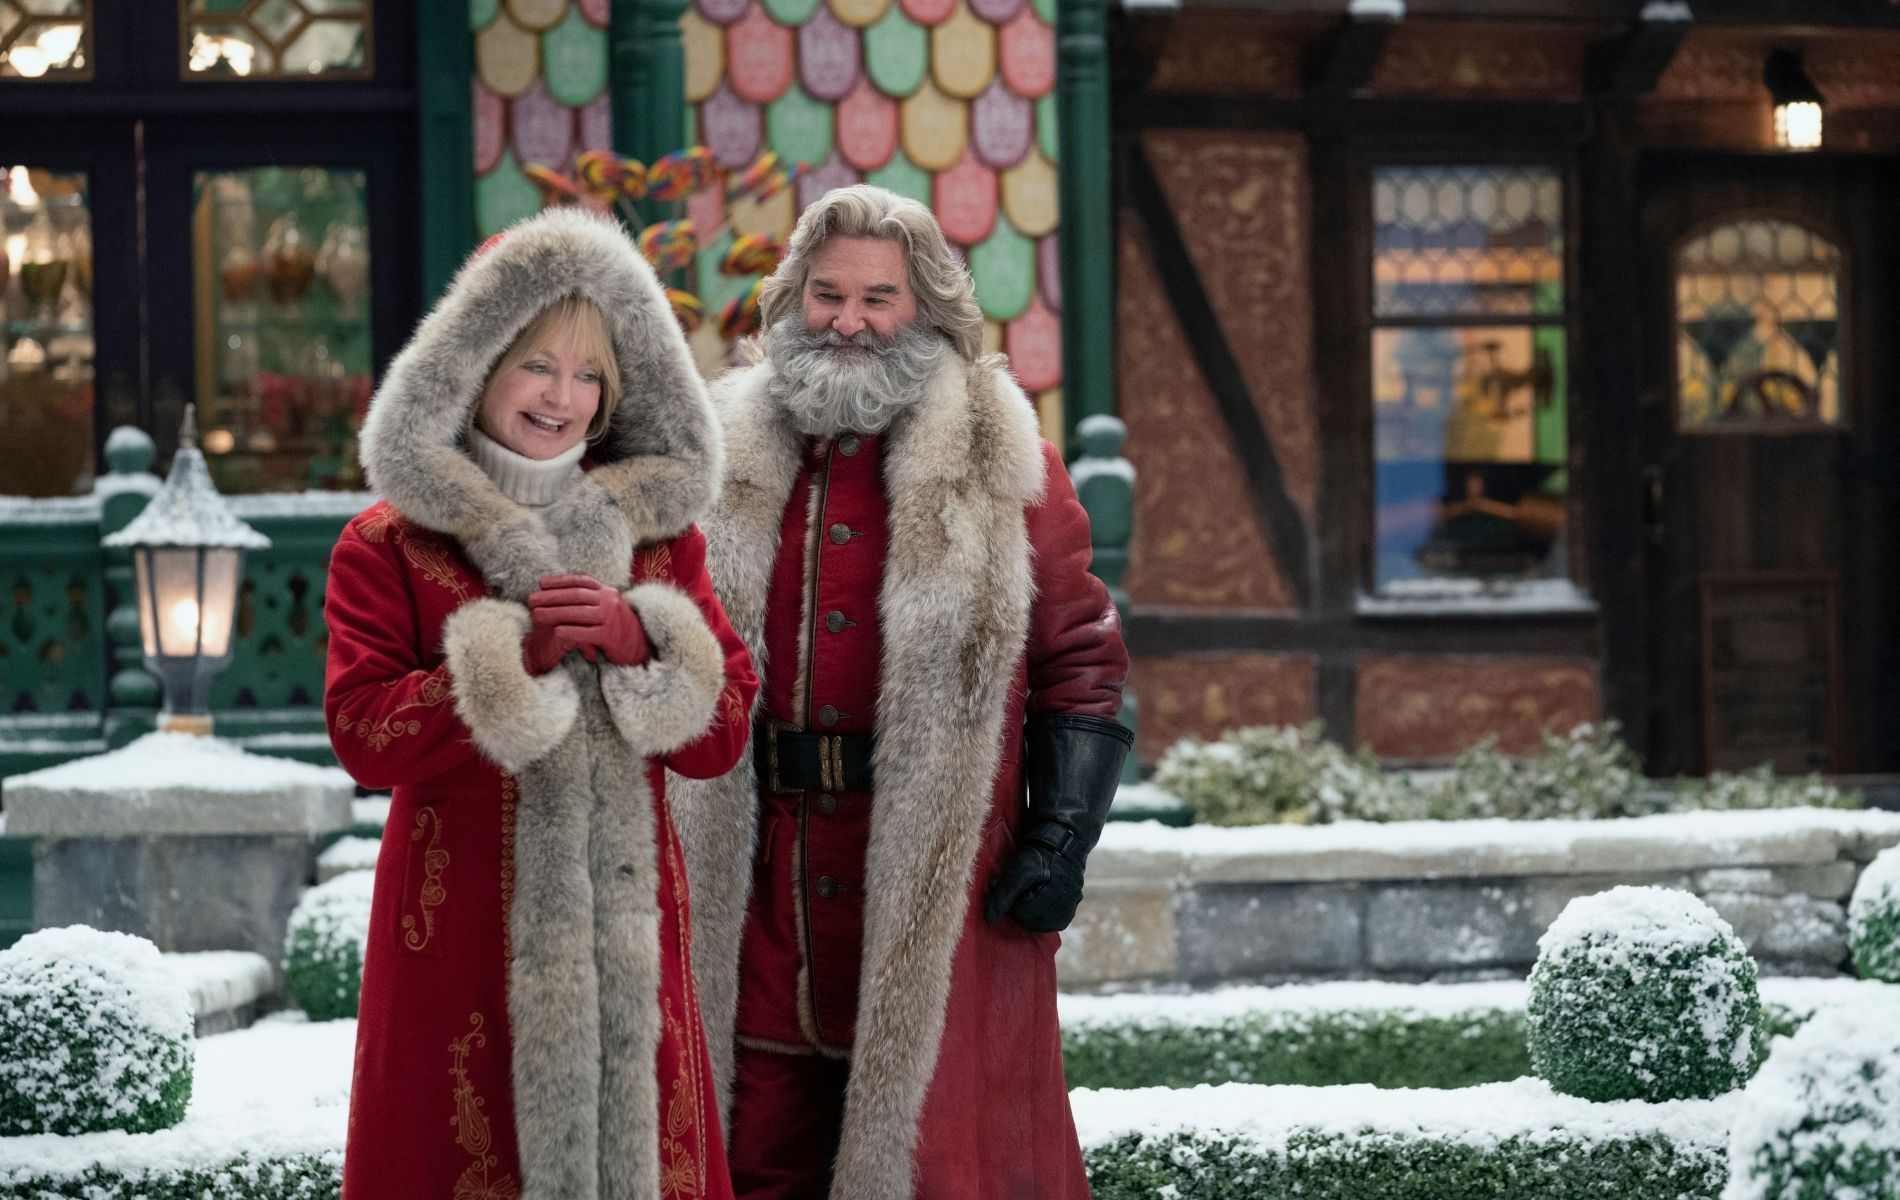 8 Shows To Watch On Netflix To Get Into The Christmas Spirit